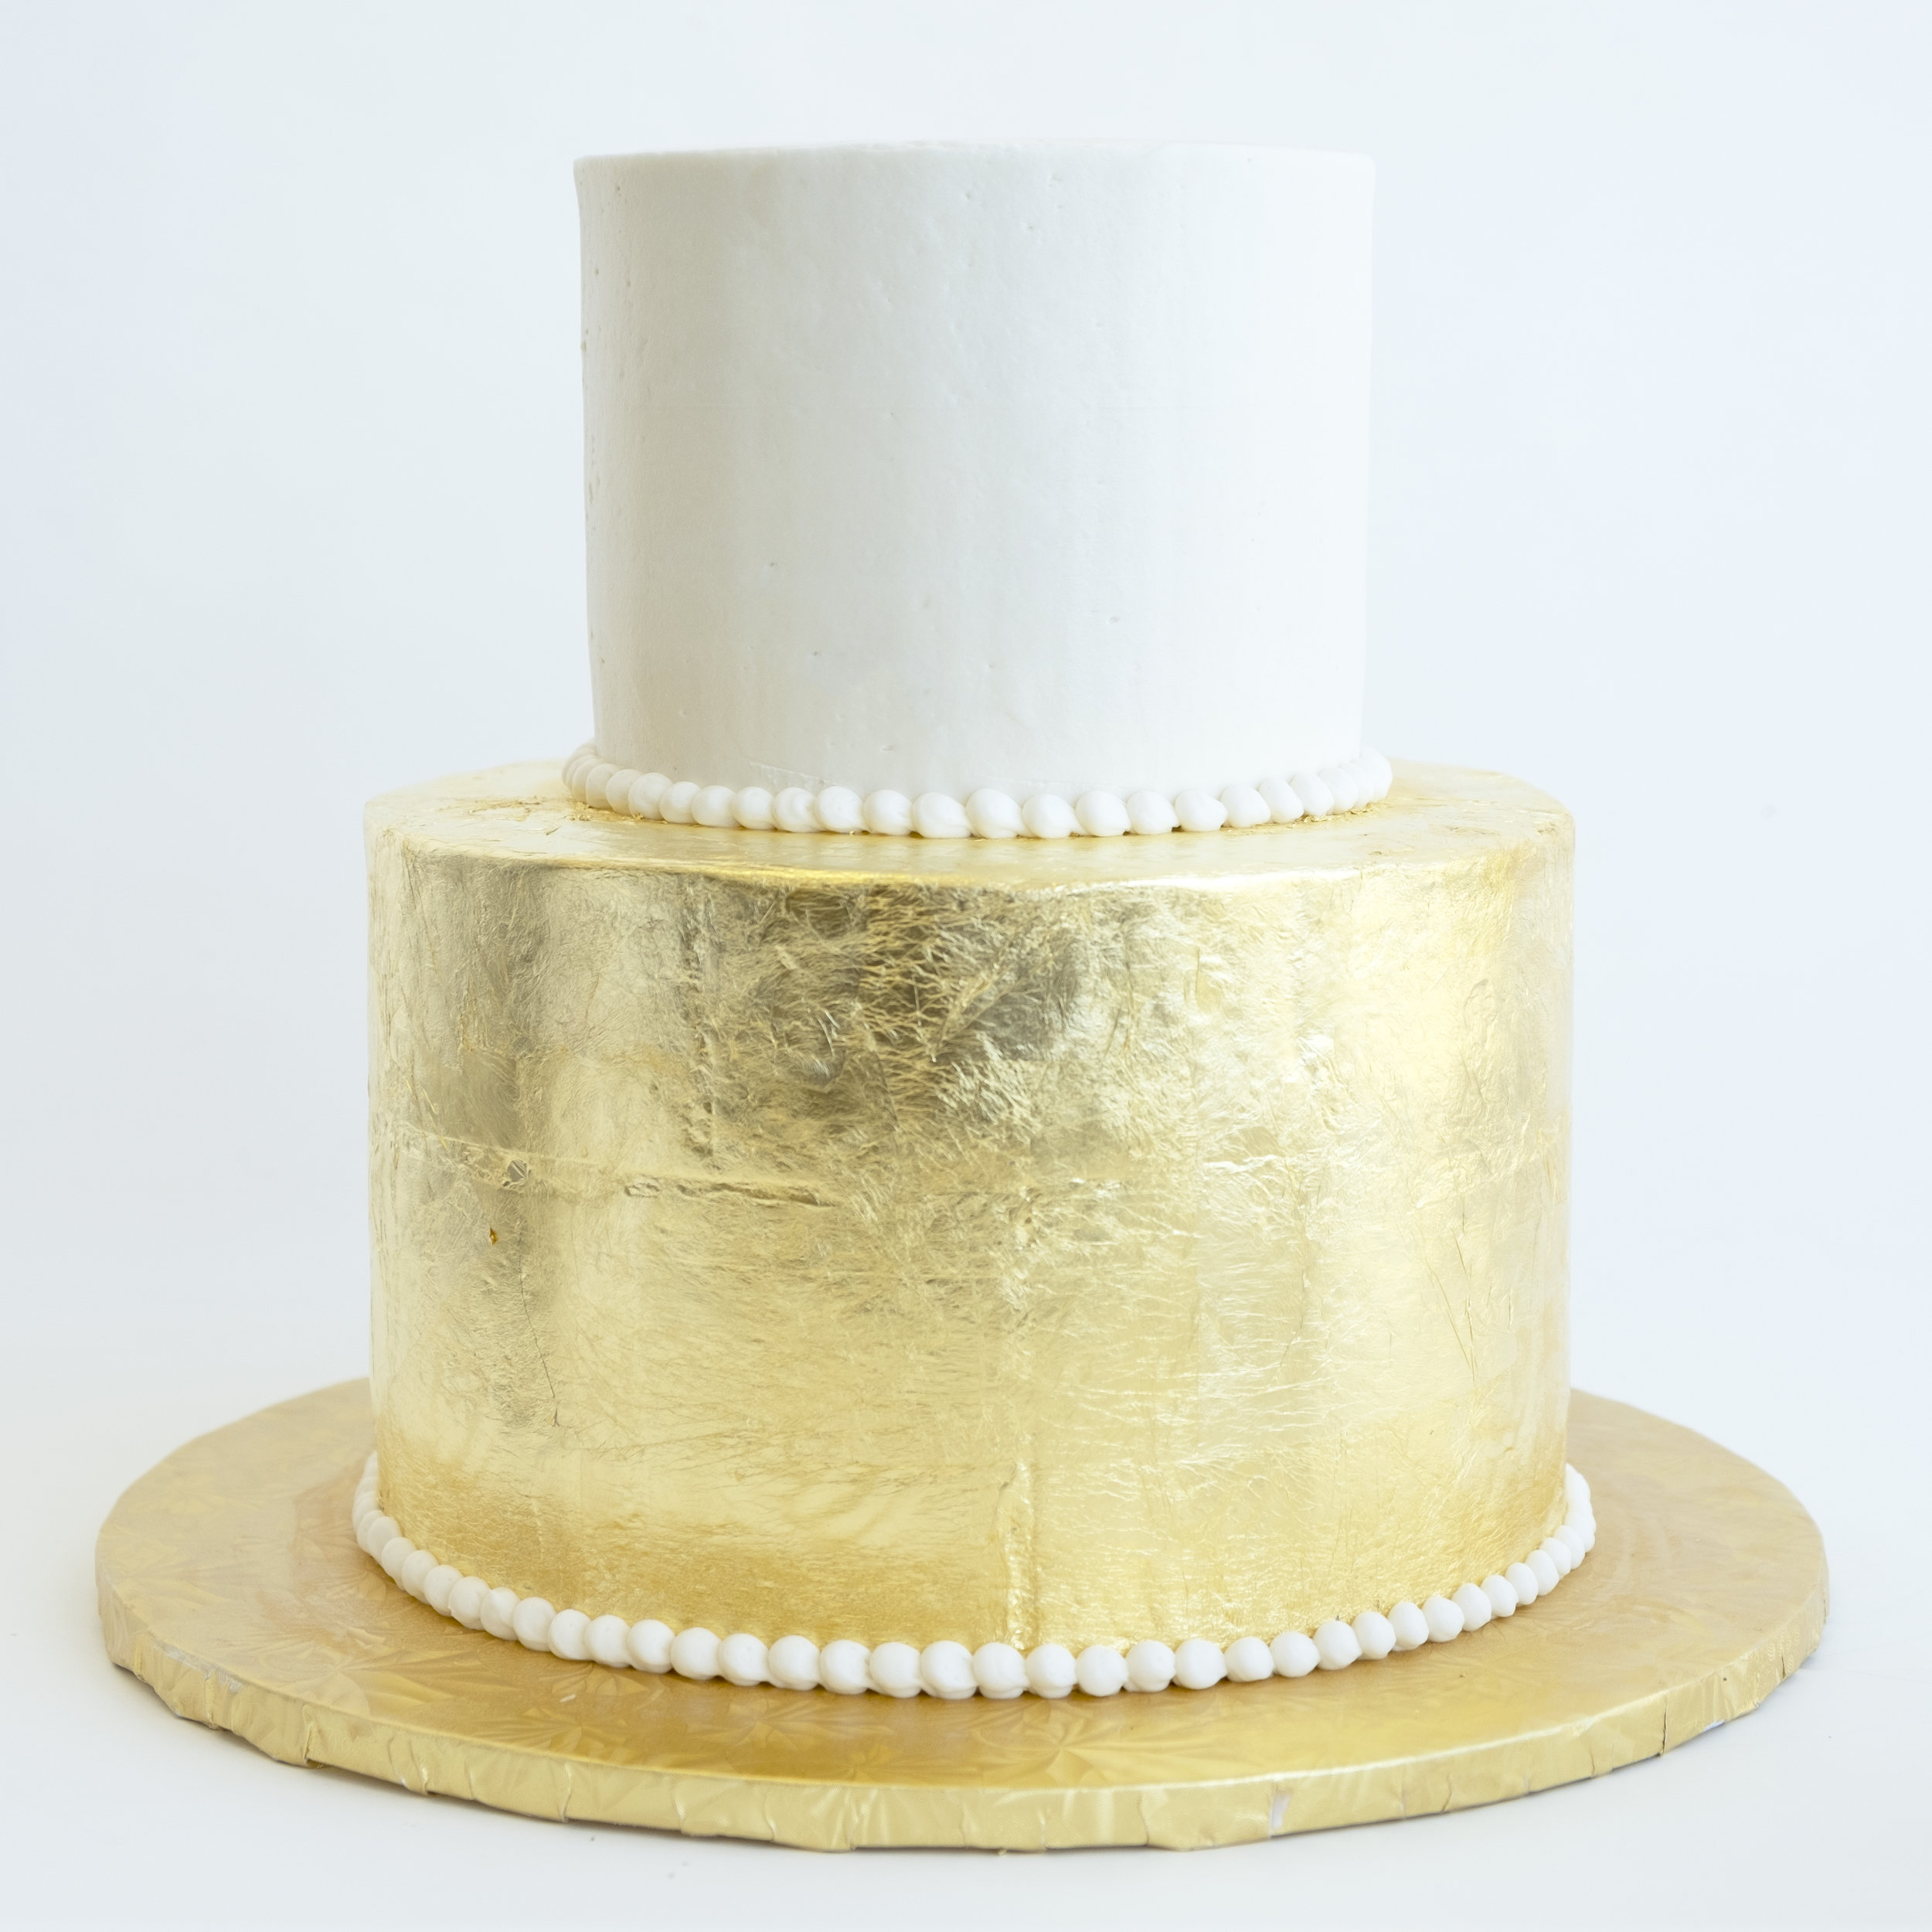 Gold Leaf Wedding Cake.jpg